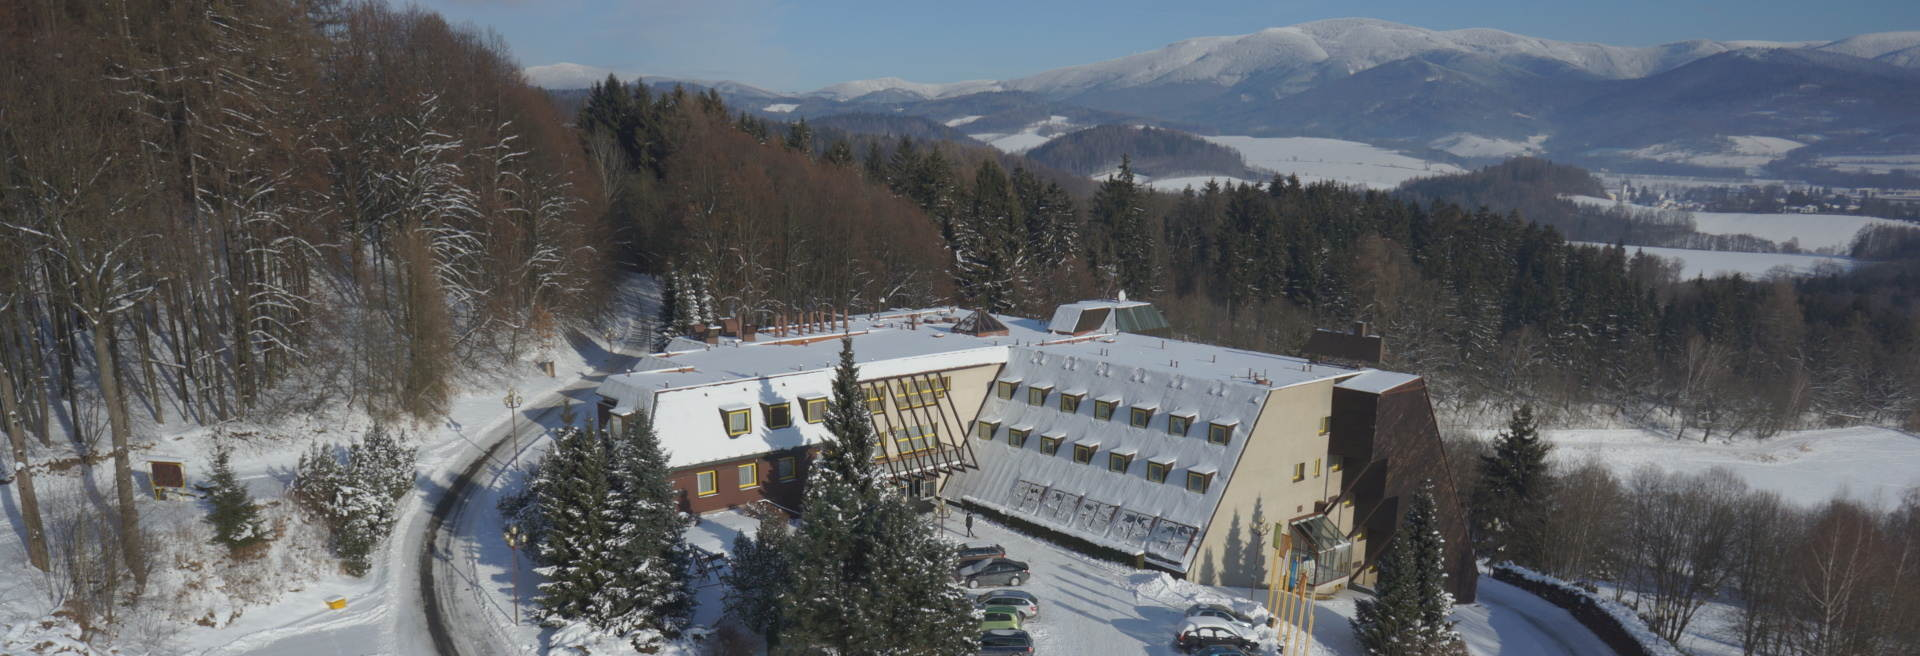 Wellness hotel DIANA in Jeseniky mountains